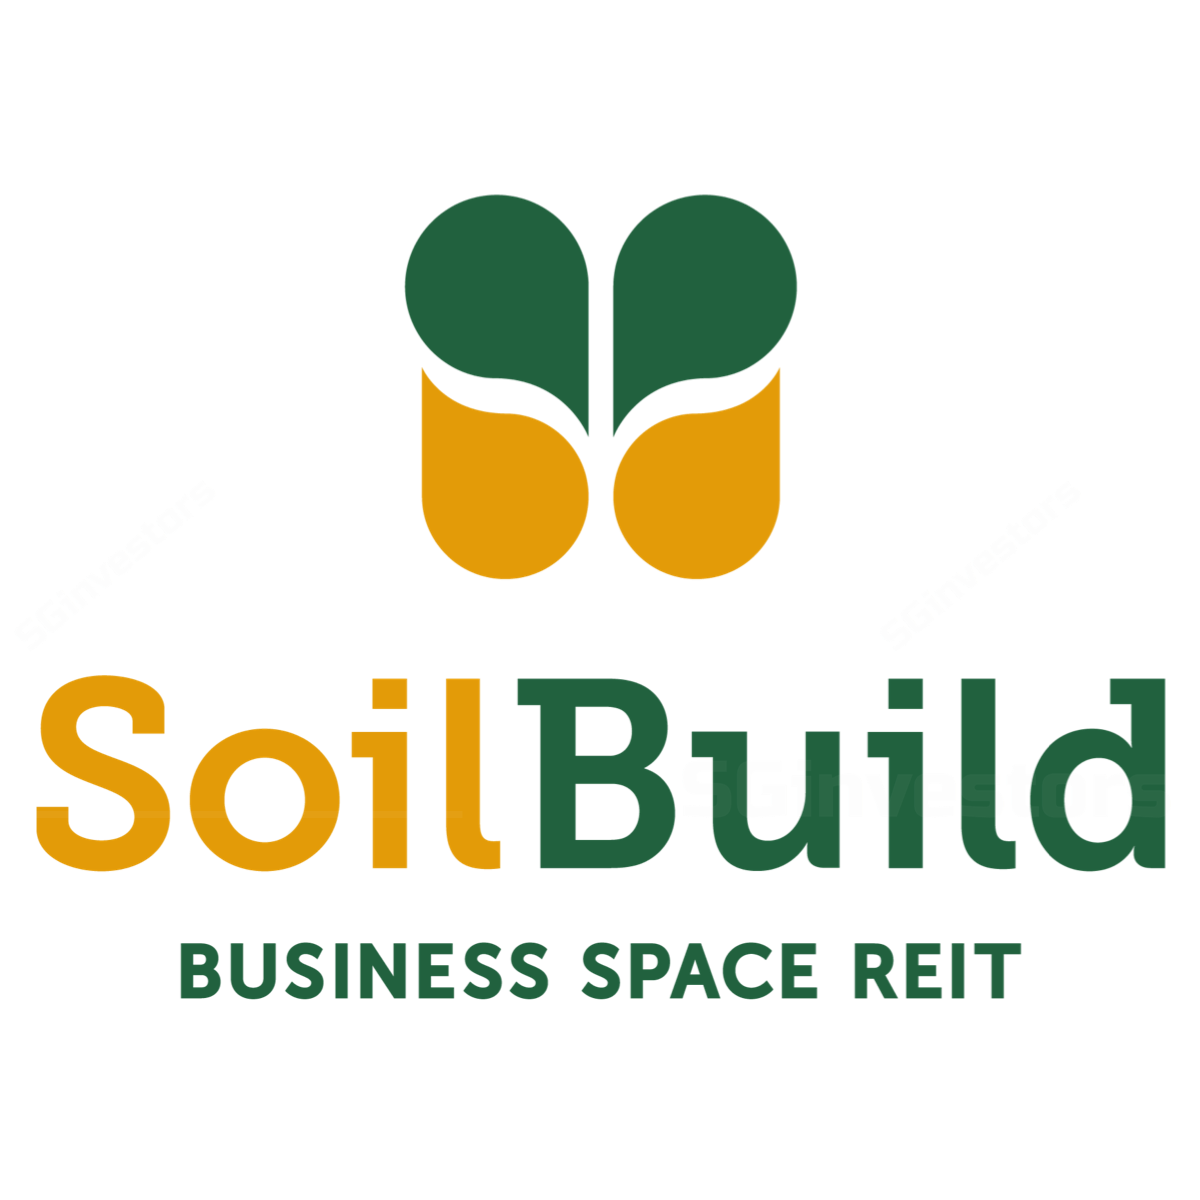 Soilbuild Business Space REIT - DBS Group Research Research 2018-07-17: Persistent Headwinds